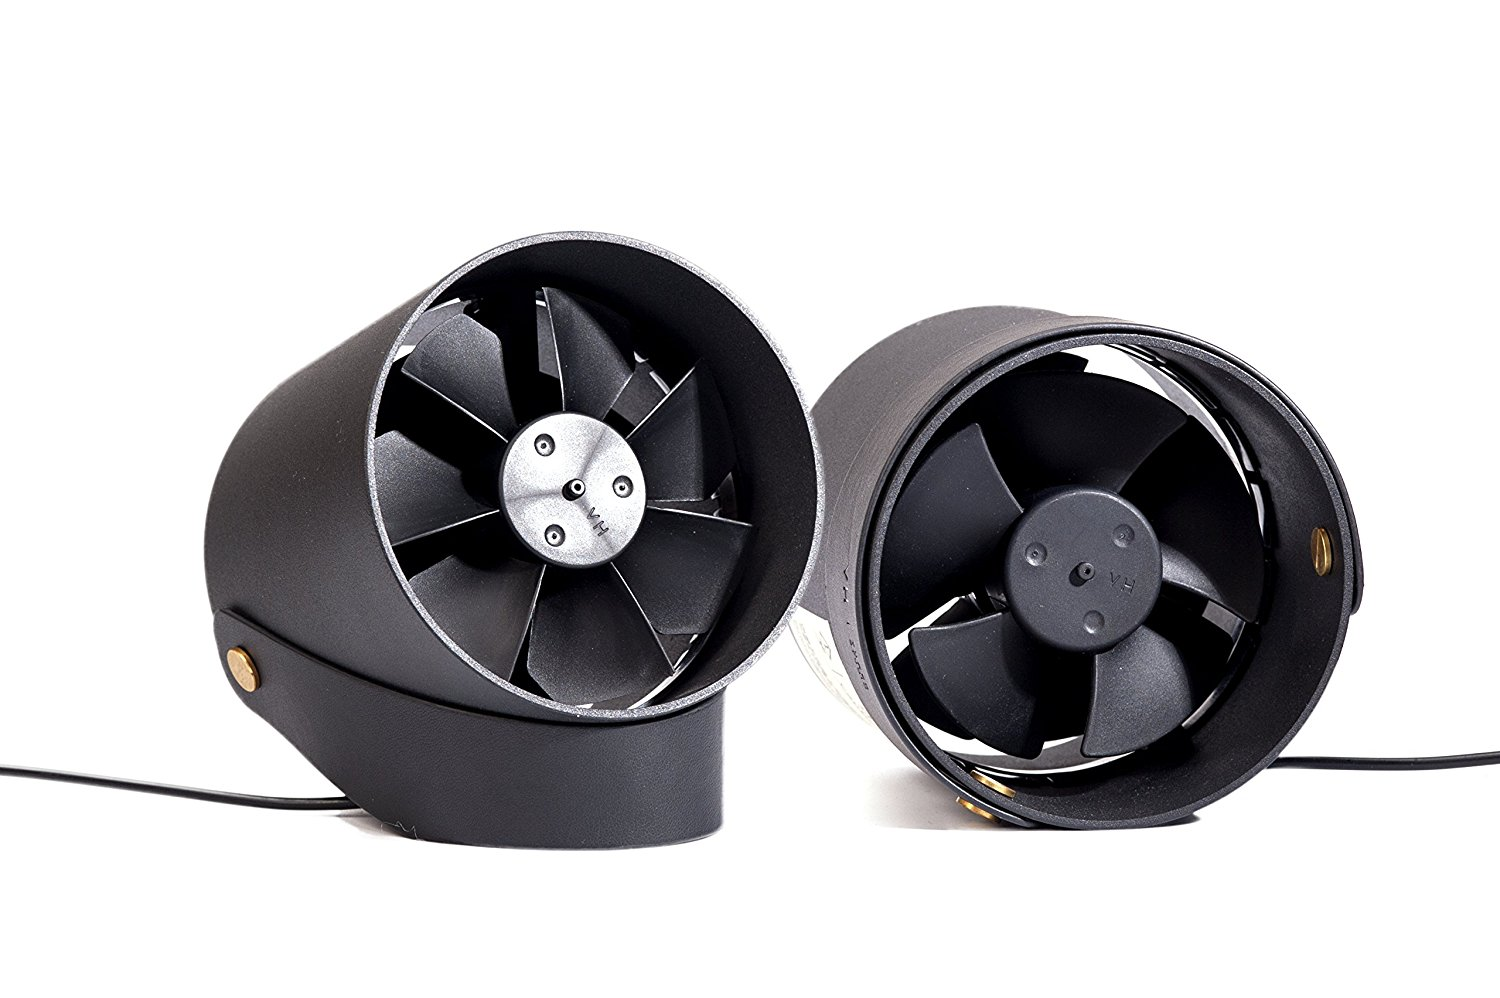 ventilateur de bureau good usb mini ventilateur portable. Black Bedroom Furniture Sets. Home Design Ideas